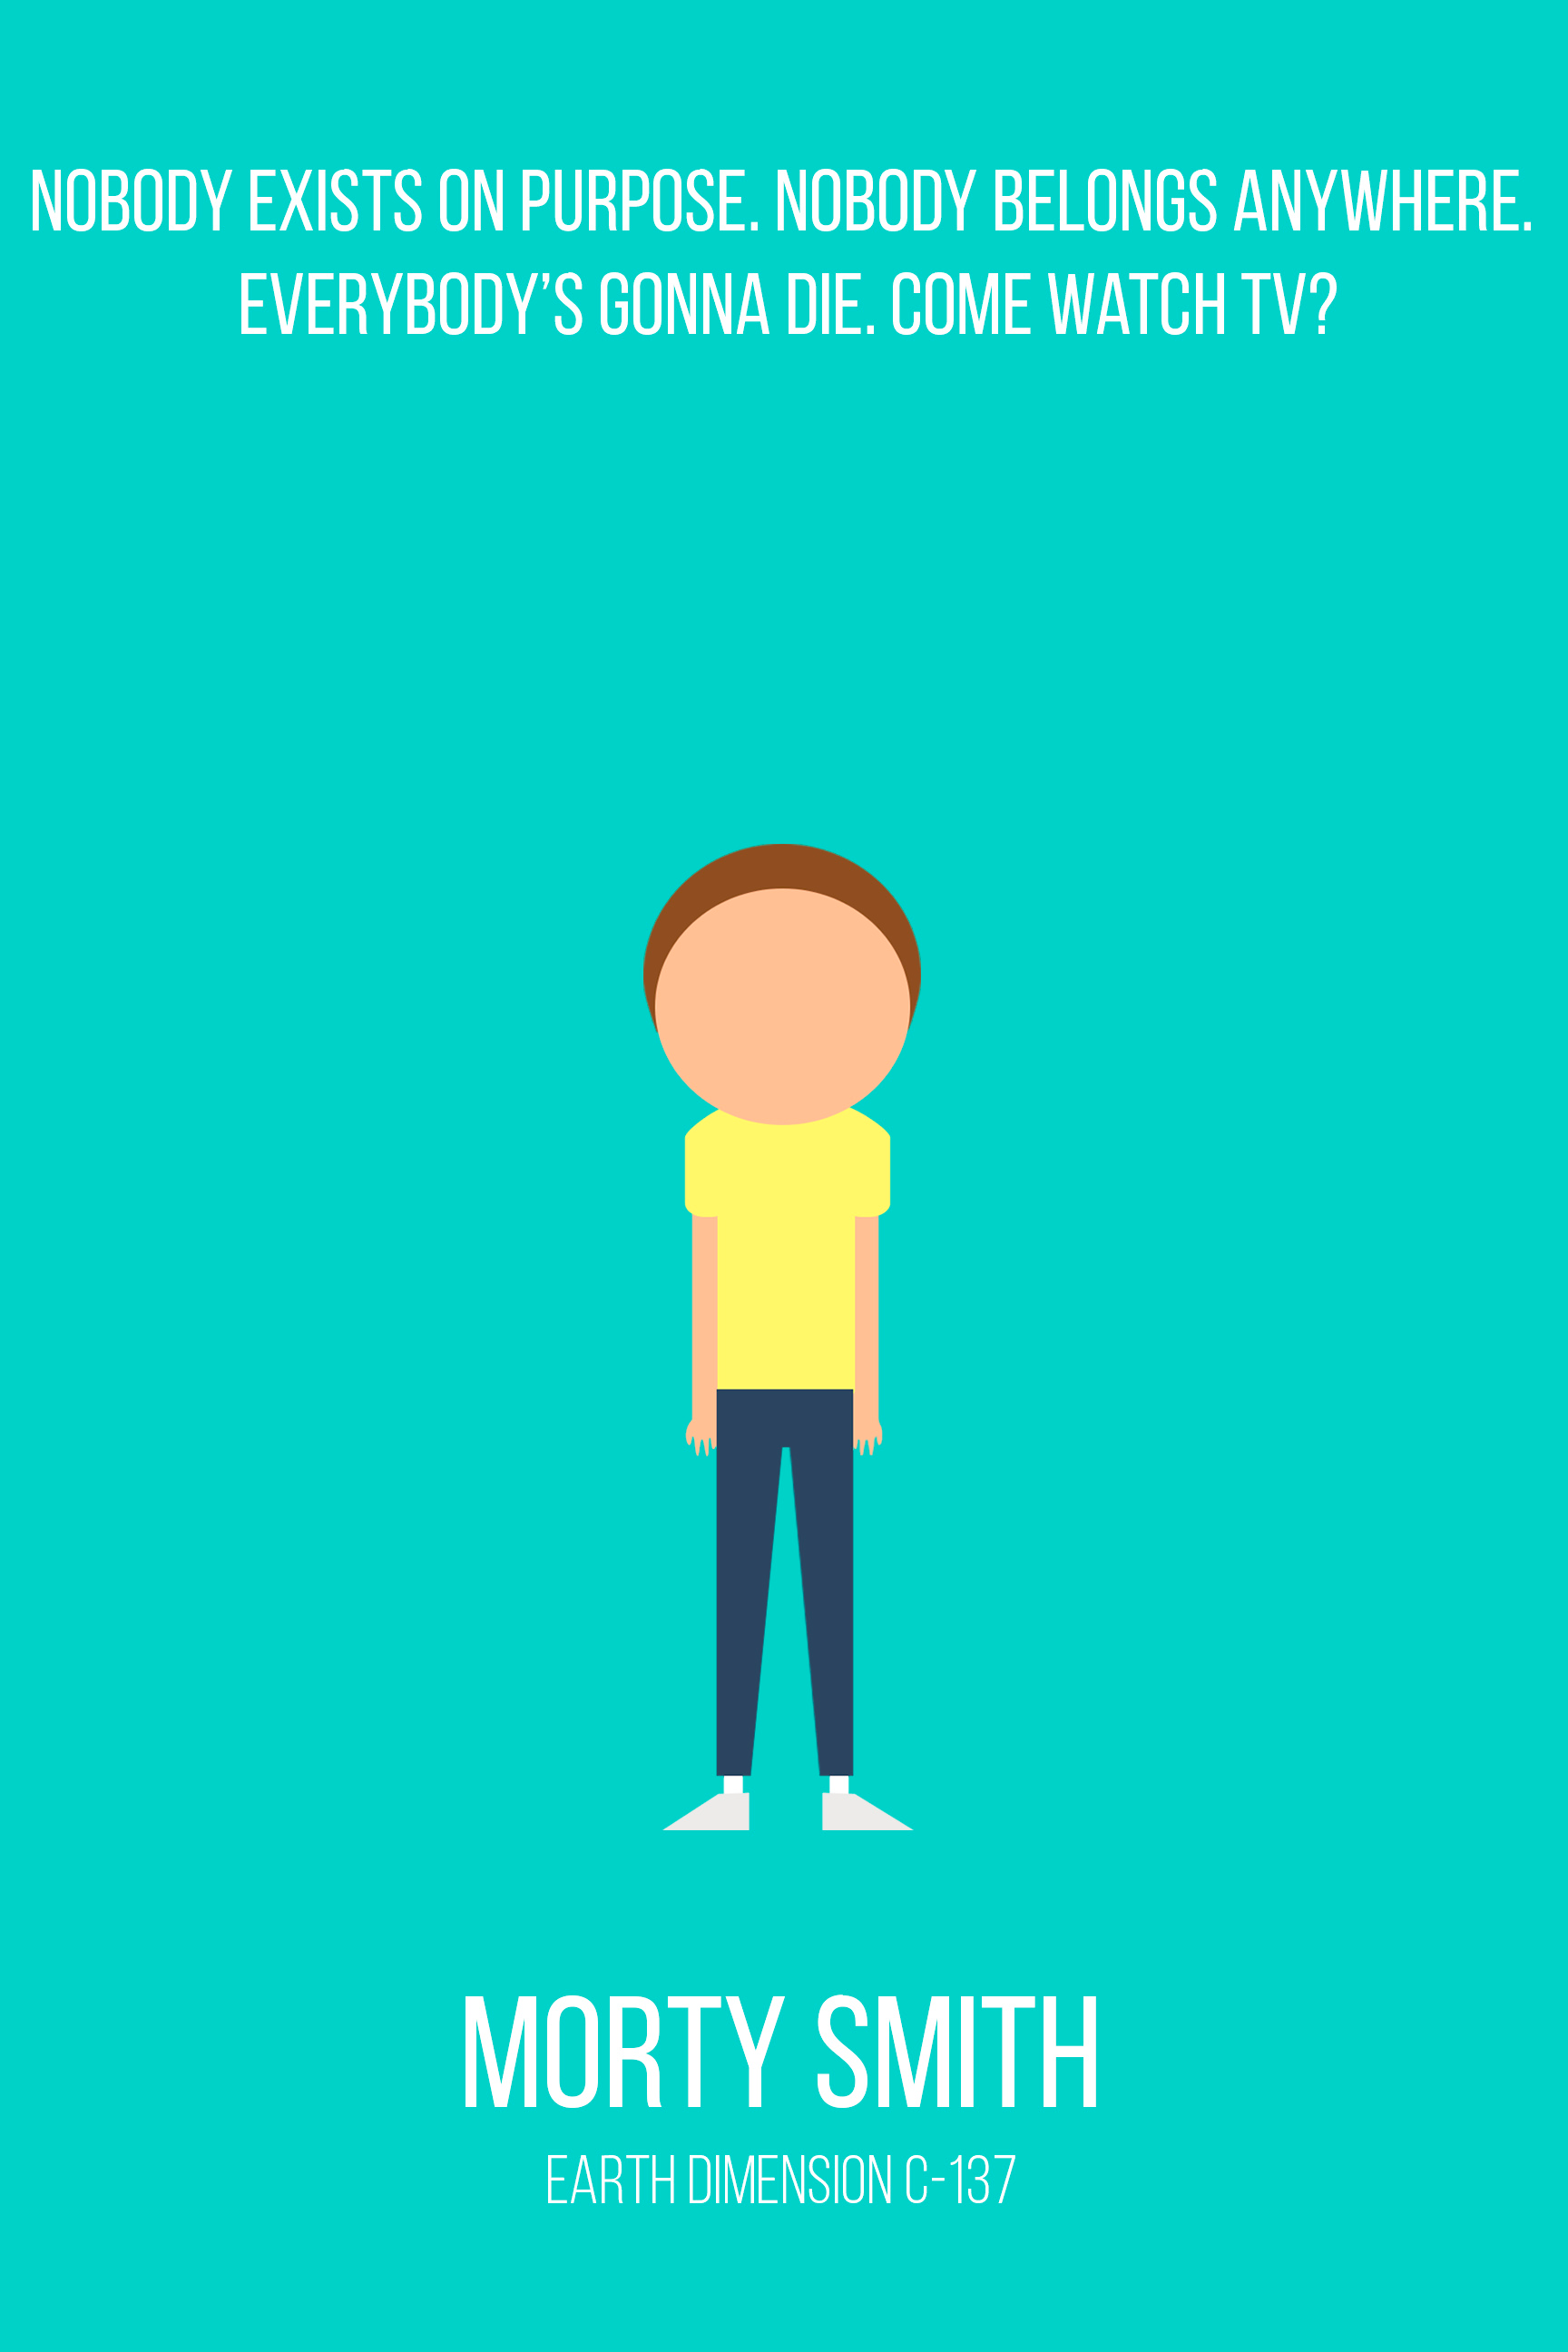 Rick And Morty Minimalism Rick And Morty Quotes Morty Smith Rick And Morty